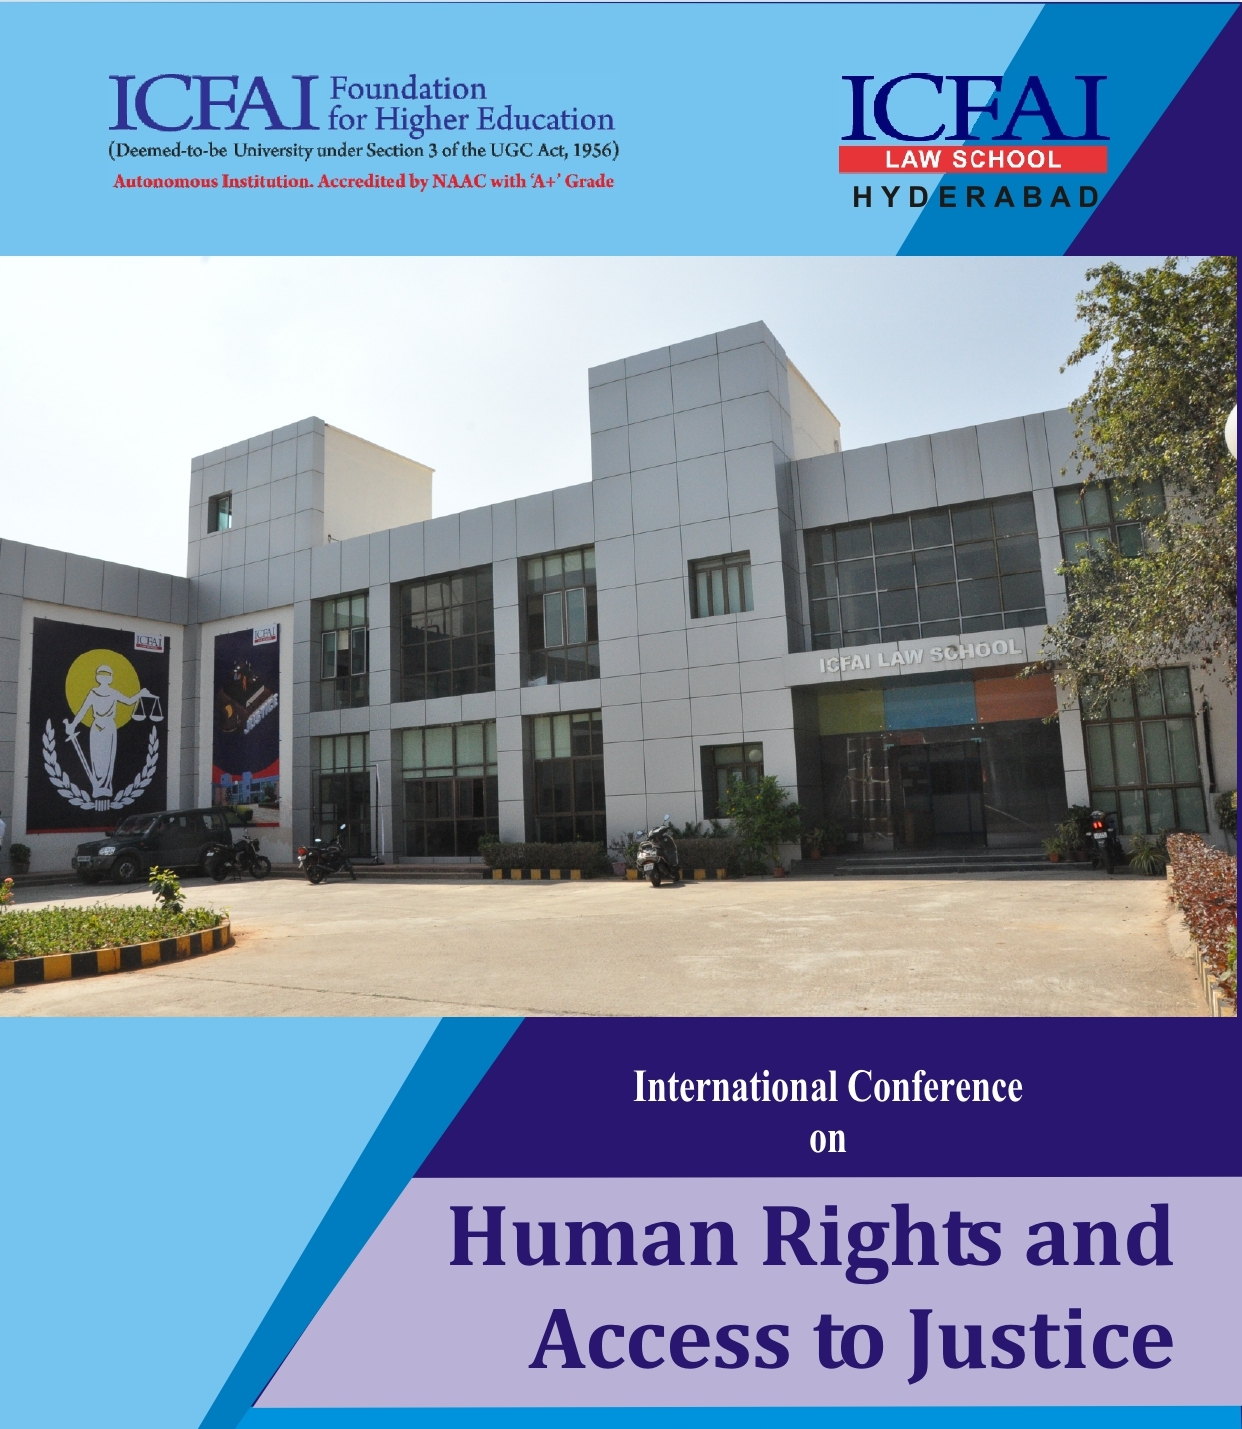 Human rights & Access to Justice